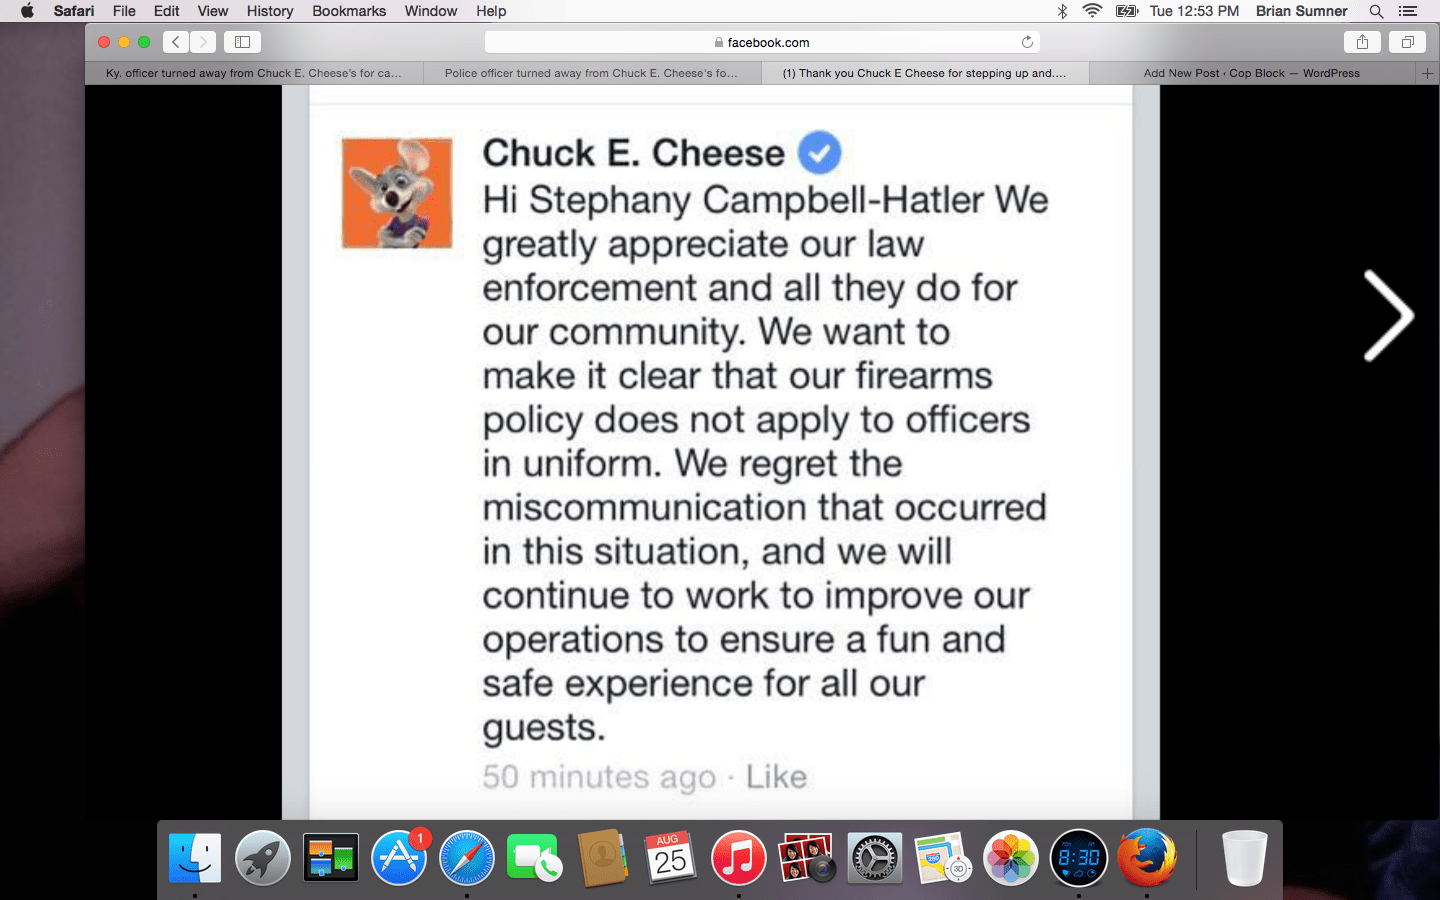 armed off duty cop wasn t served at chuck e cheese cop block screen shot 2015 08 25 at 12 53 43 pm